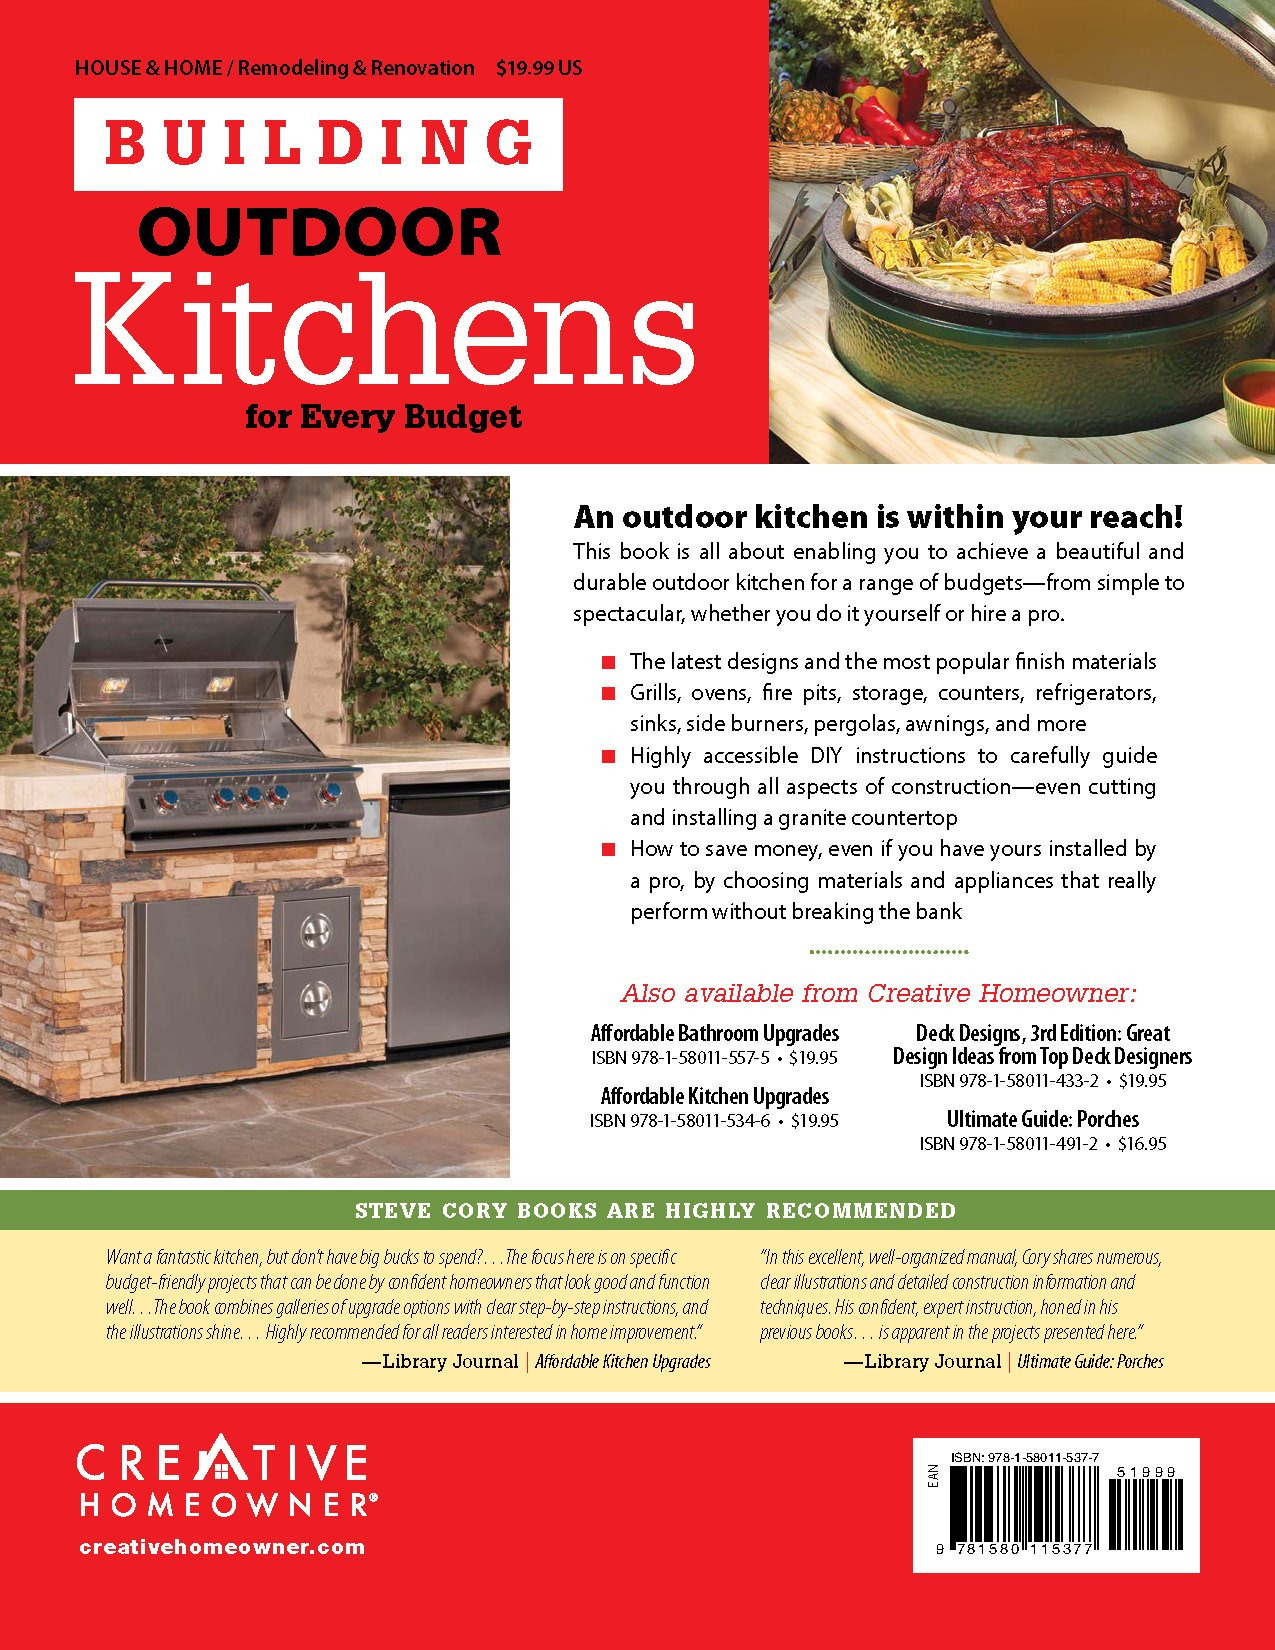 Building outdoor kitchens for every budget home improvement steve building outdoor kitchens for every budget home improvement steve cory home improvement kitchen how to diane slavik 9781580115377 amazon books solutioingenieria Image collections